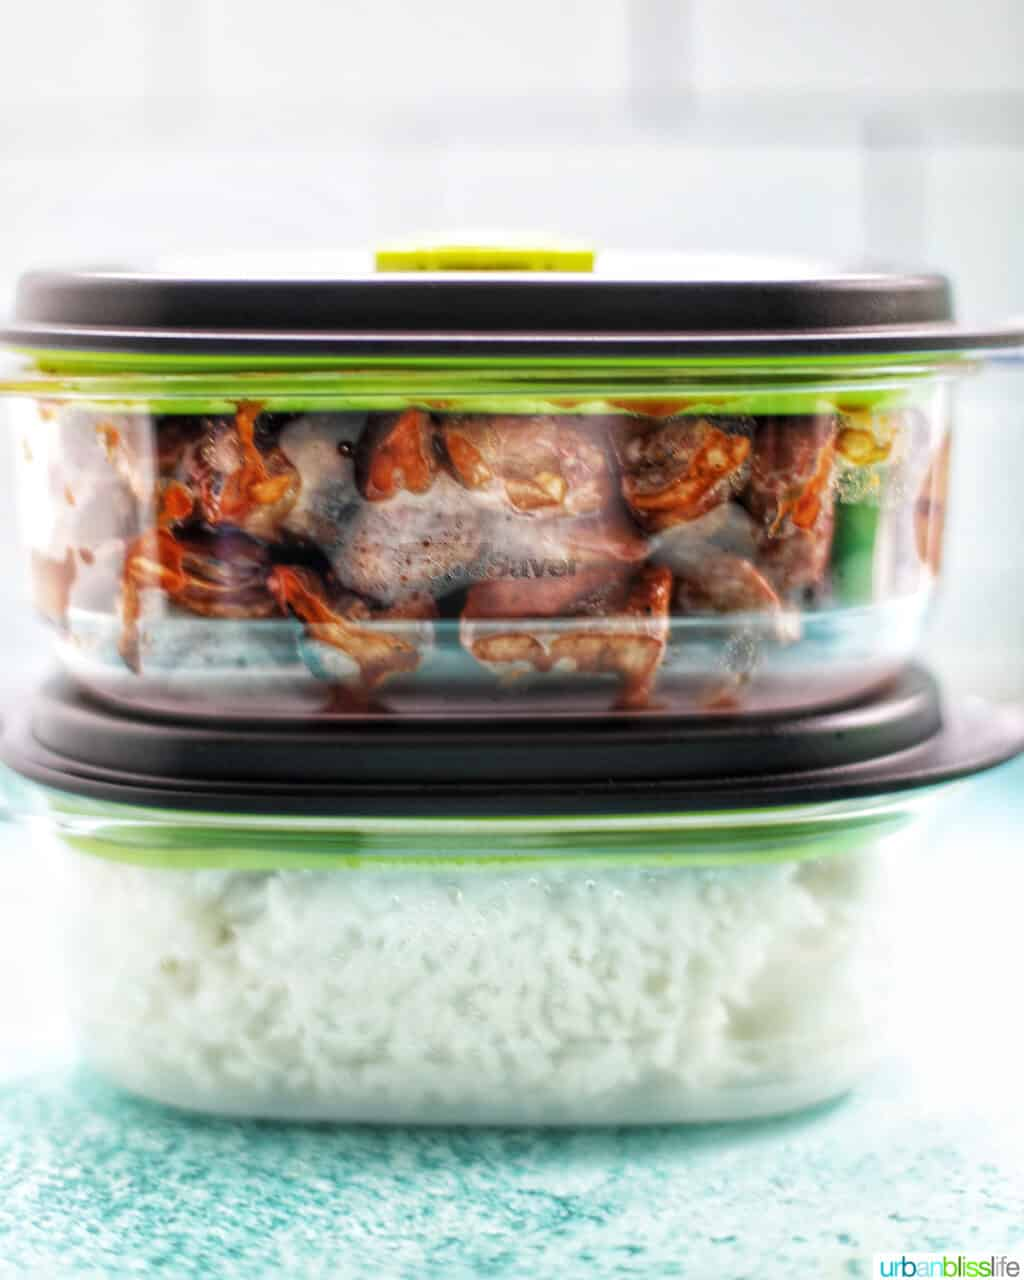 Filipino BBQ pork skewers stored in FoodSaver containers